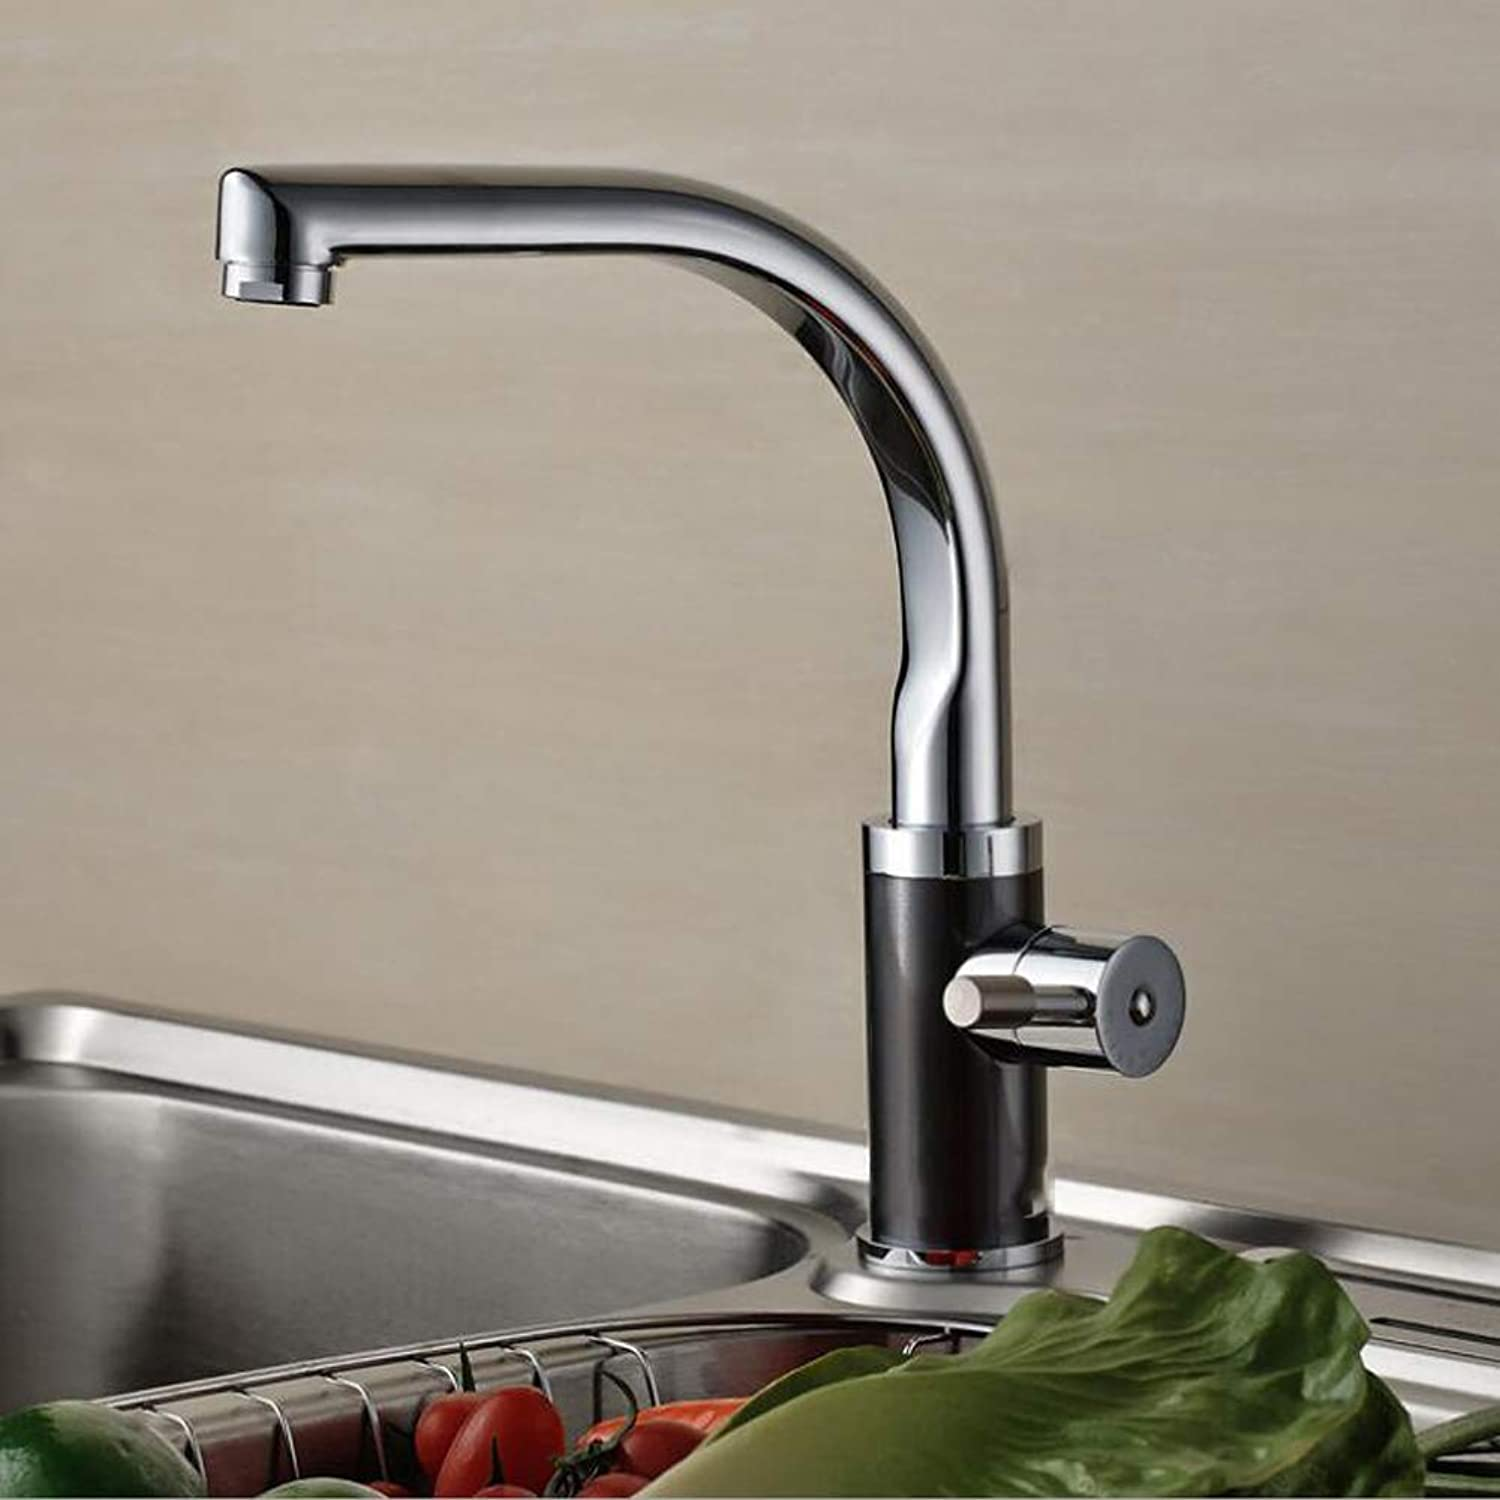 Bathroom Kitchen Sink Faucet,Silver360 Degree redation Spout Tube Hot and Cold All Brass Chrom.